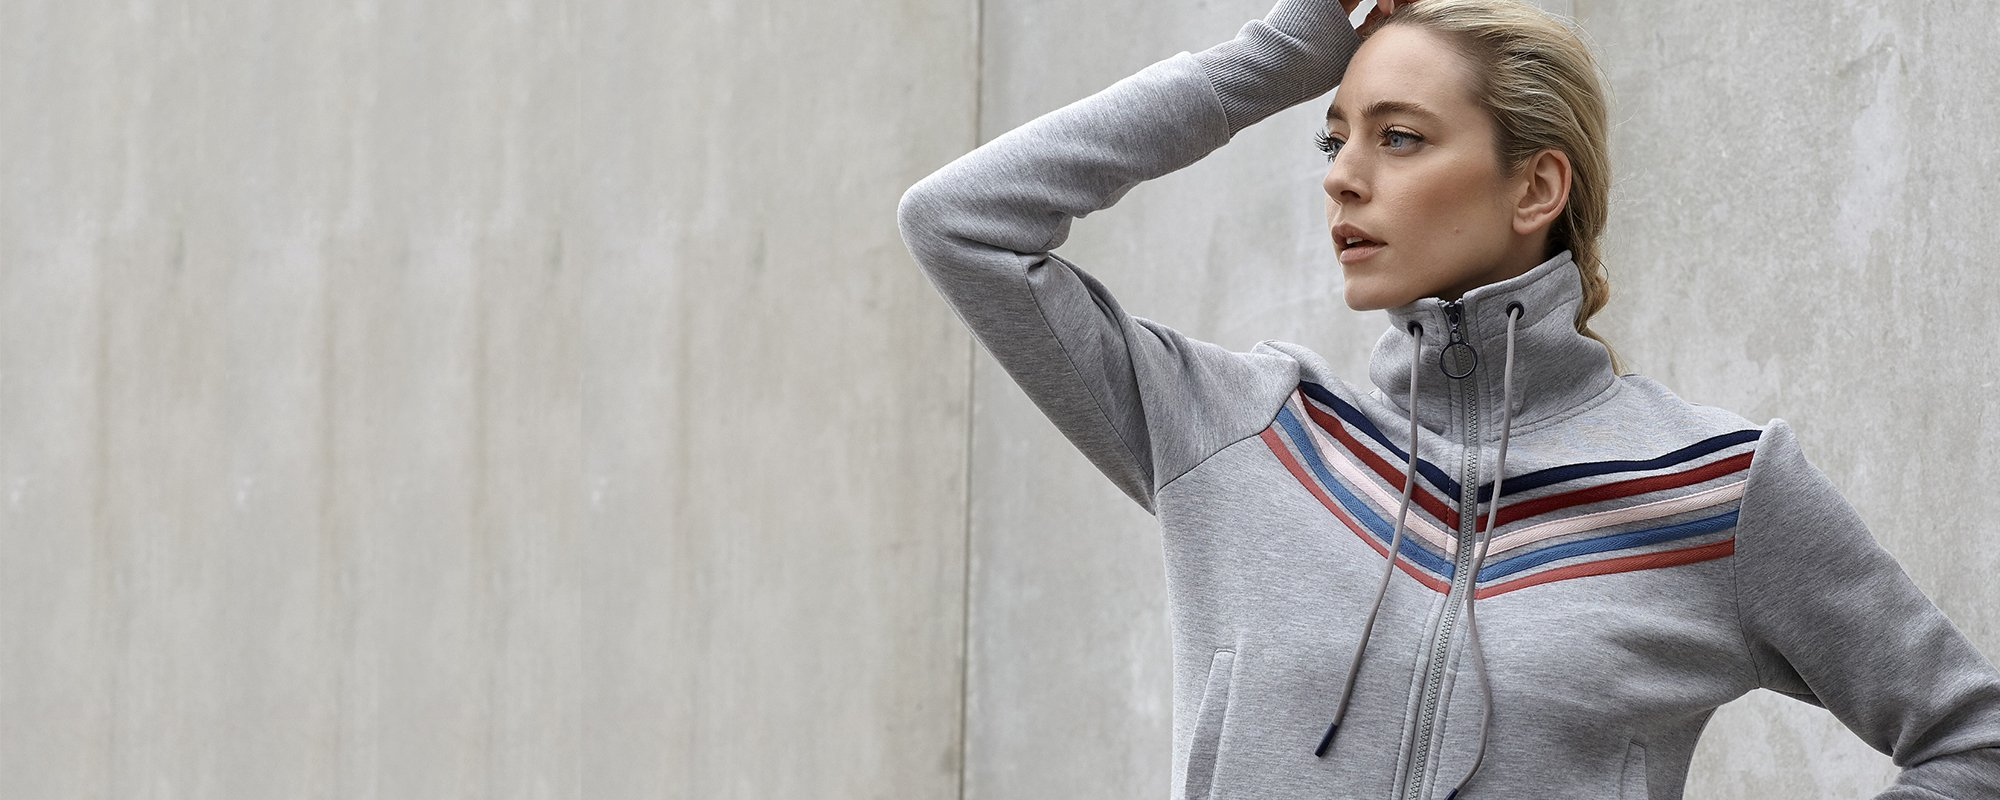 Yard, Workout, Walk Or Lounge. Athleisure wear perfect for every eventuality